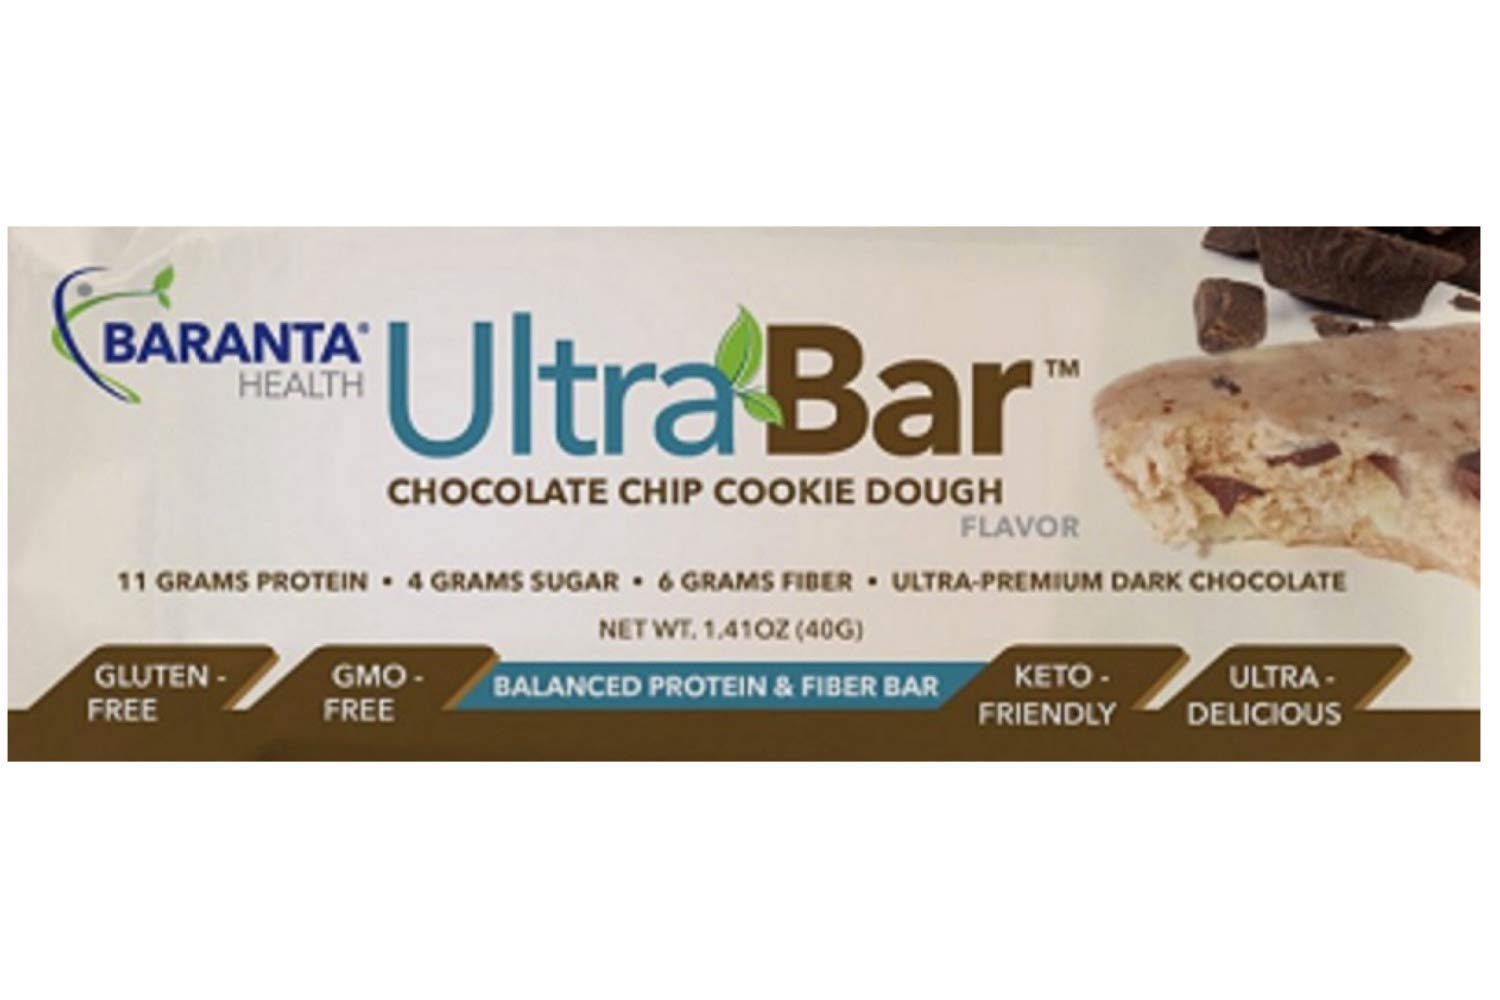 Keto Chocolate Chip Cookie Dough Bars Diet Snack (12 Count), Almond and Cacao Butter, 11g of Protein Low Carb Low Sugar, Gluten Free, Stevia, Coconut Oil | by Baranta Health by Baranta Health